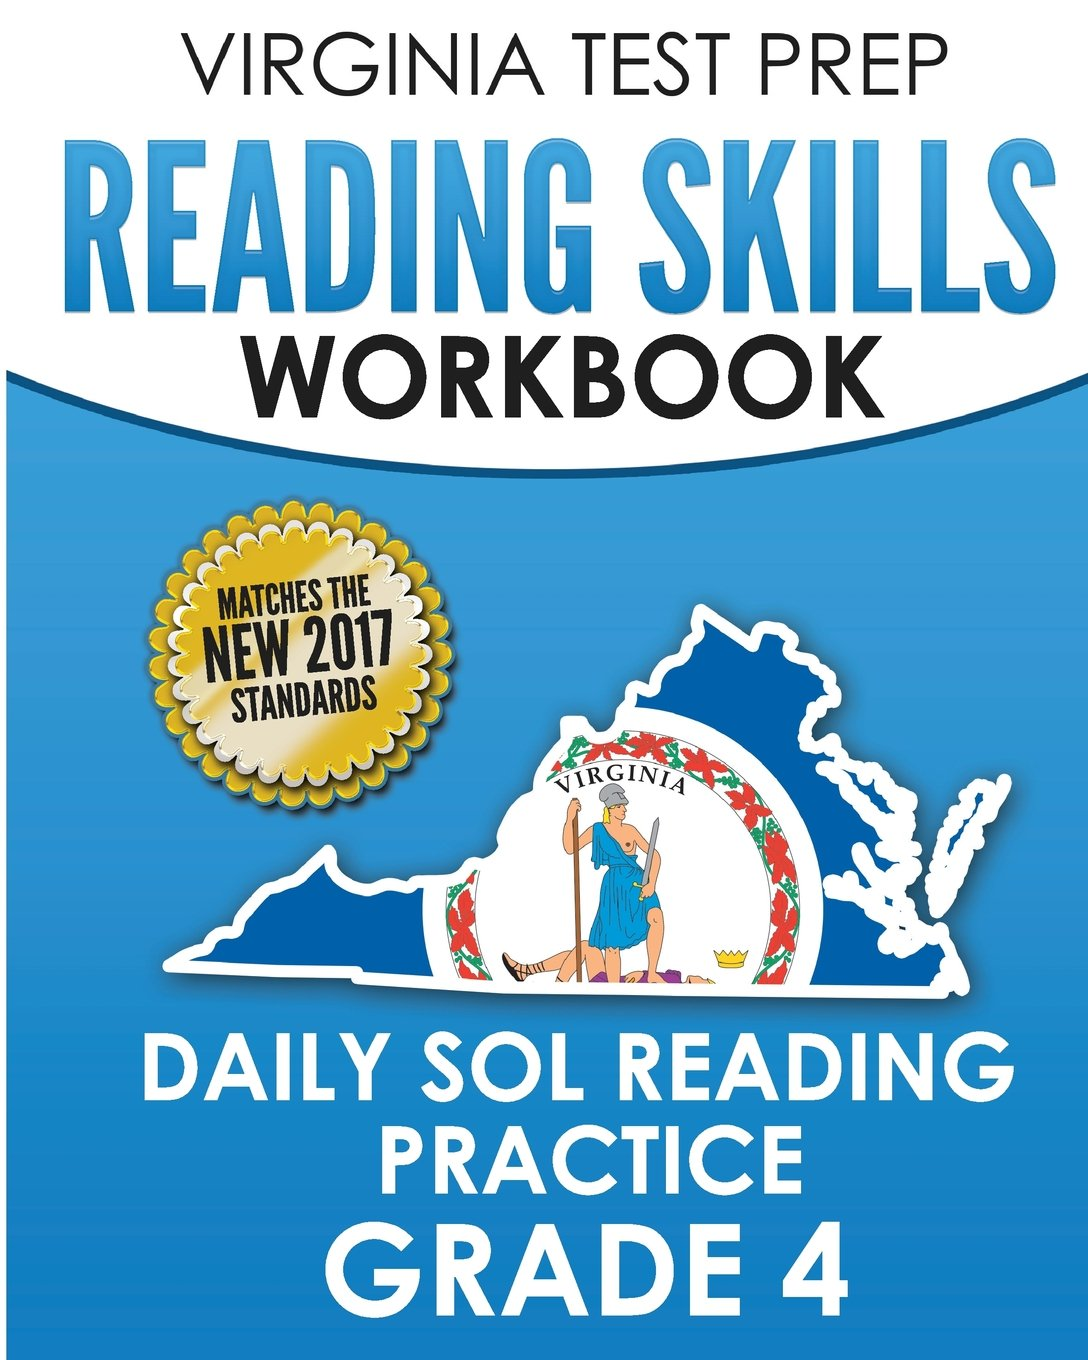 Download VIRGINIA TEST PREP Reading Skills Workbook Daily SOL Reading Practice Grade 4: Practice for the SOL Reading Assessments PDF